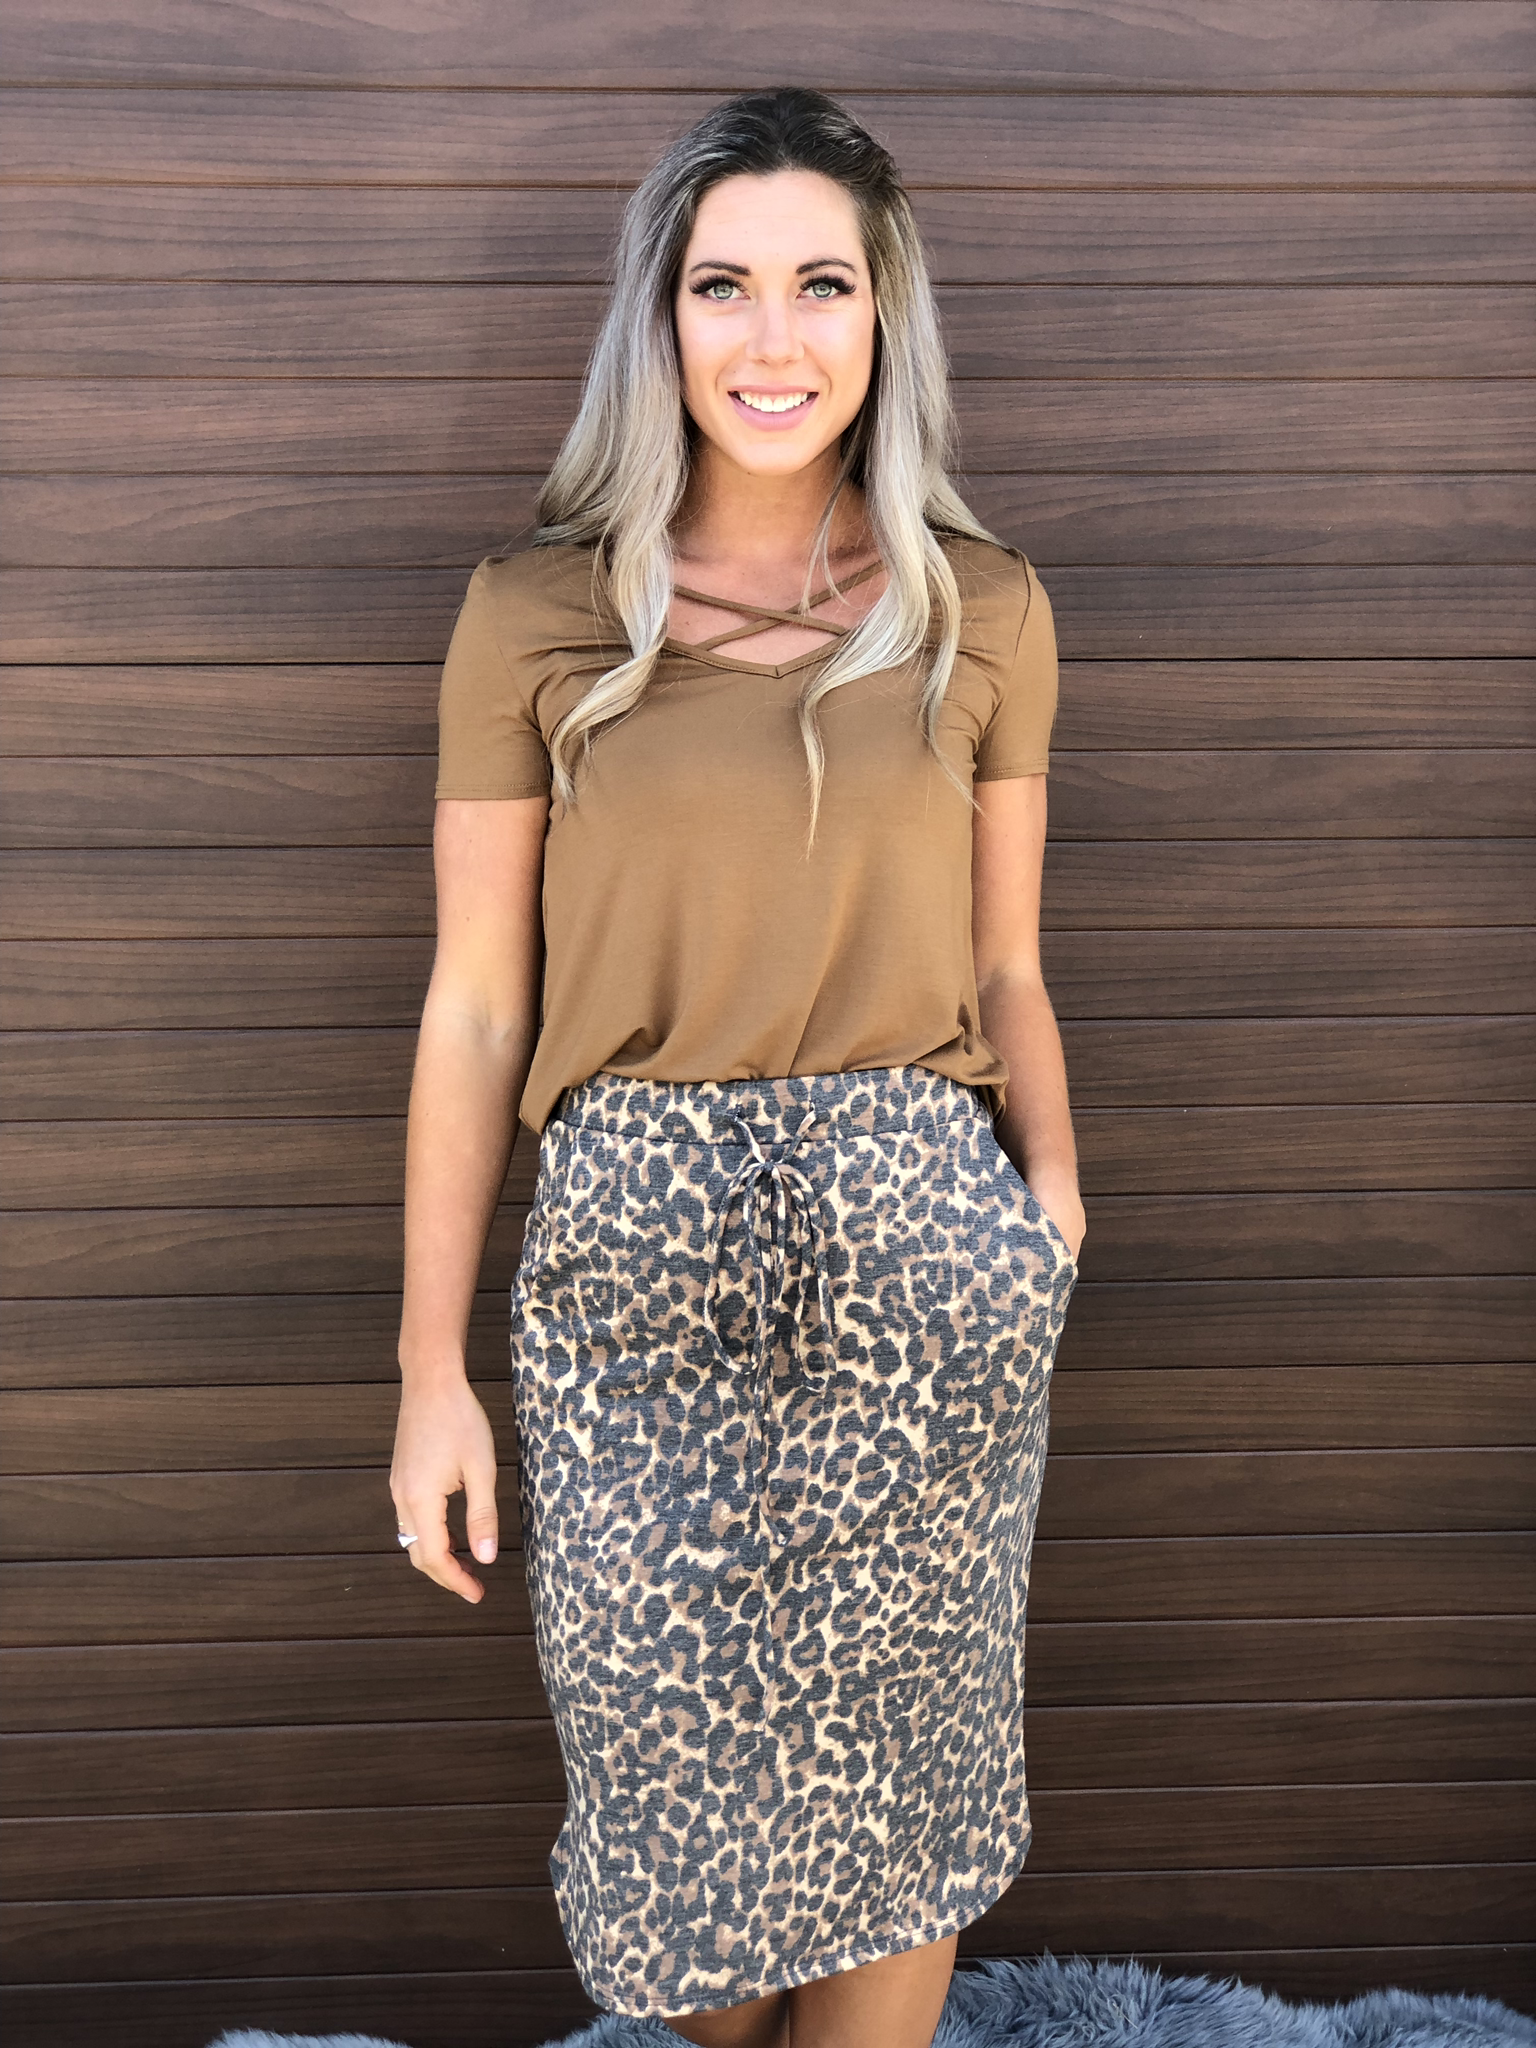 Cheetah Skirt 83376